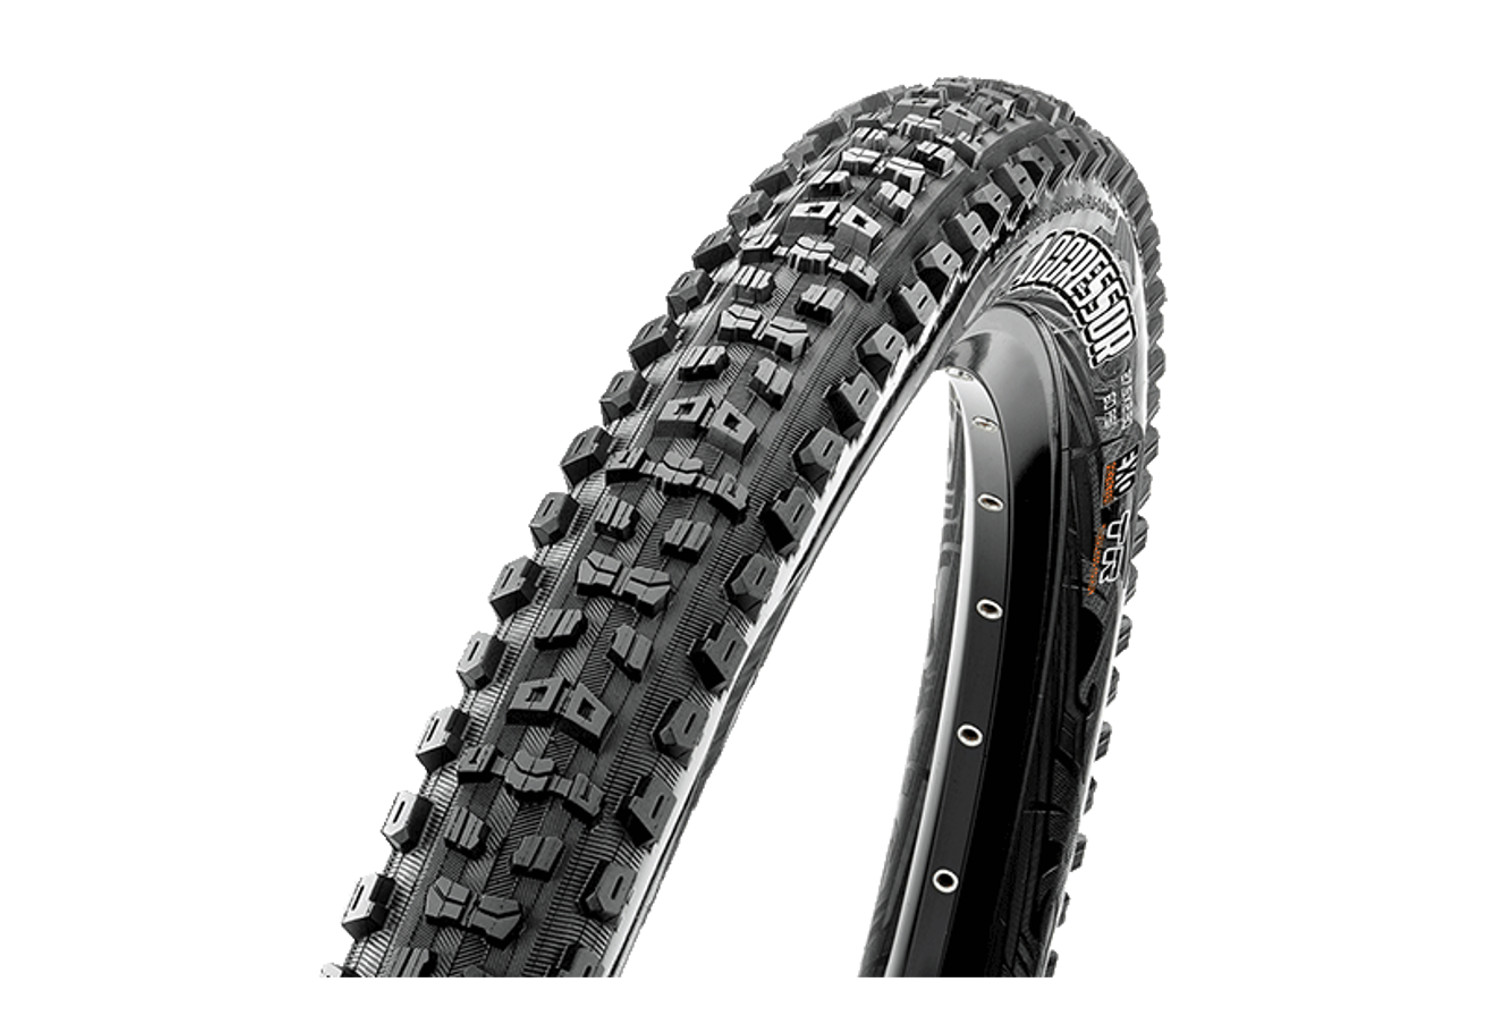 maxxis pneu aggressor 27 5 exo protection dual tubeless. Black Bedroom Furniture Sets. Home Design Ideas